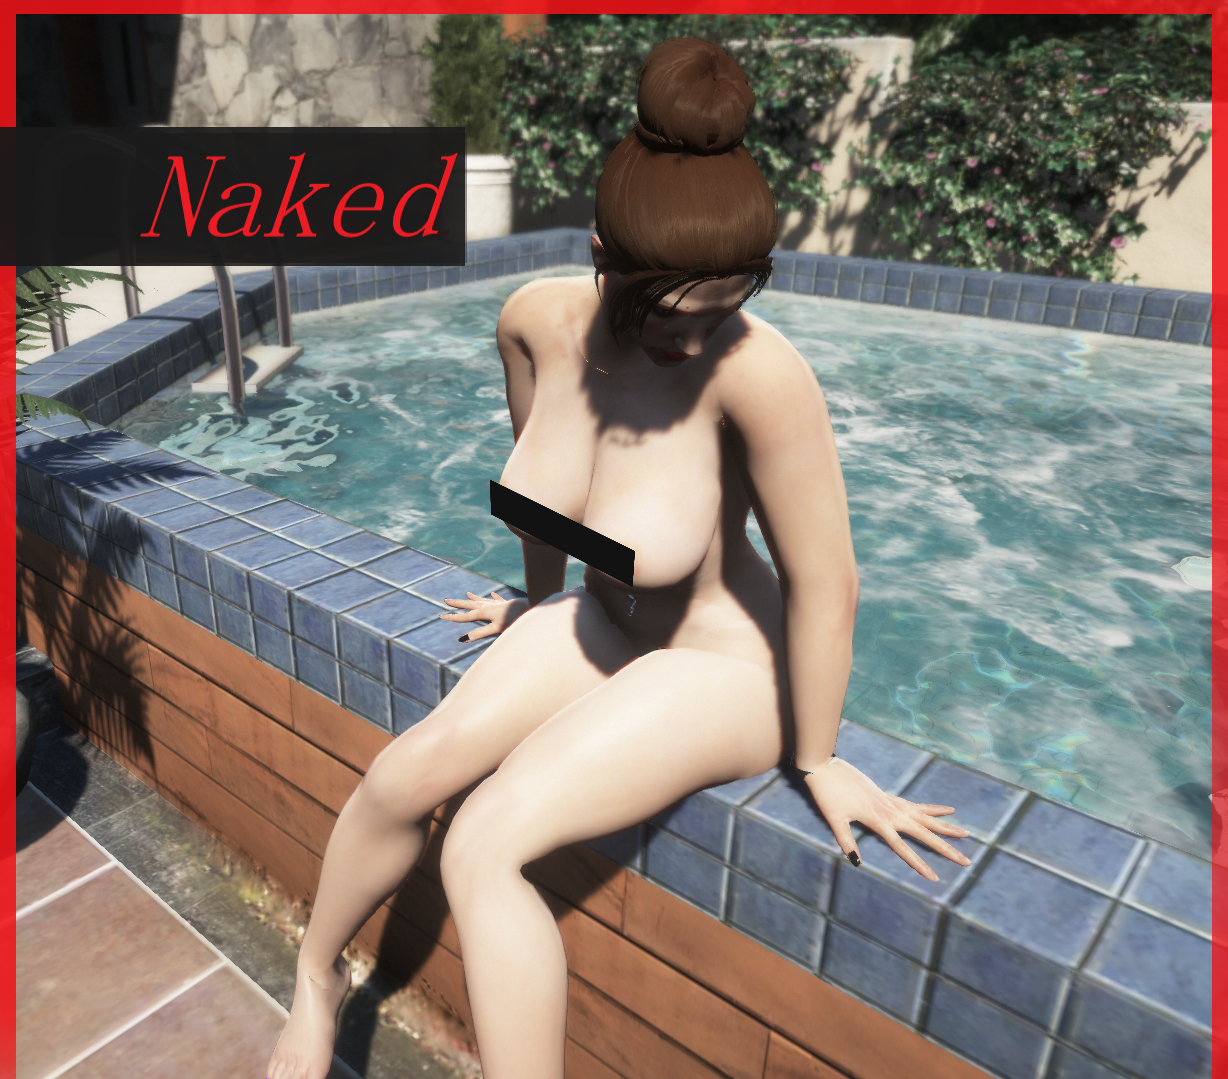 Realistic Naked Body For Mpfemale - Gta5-Modscom-6502